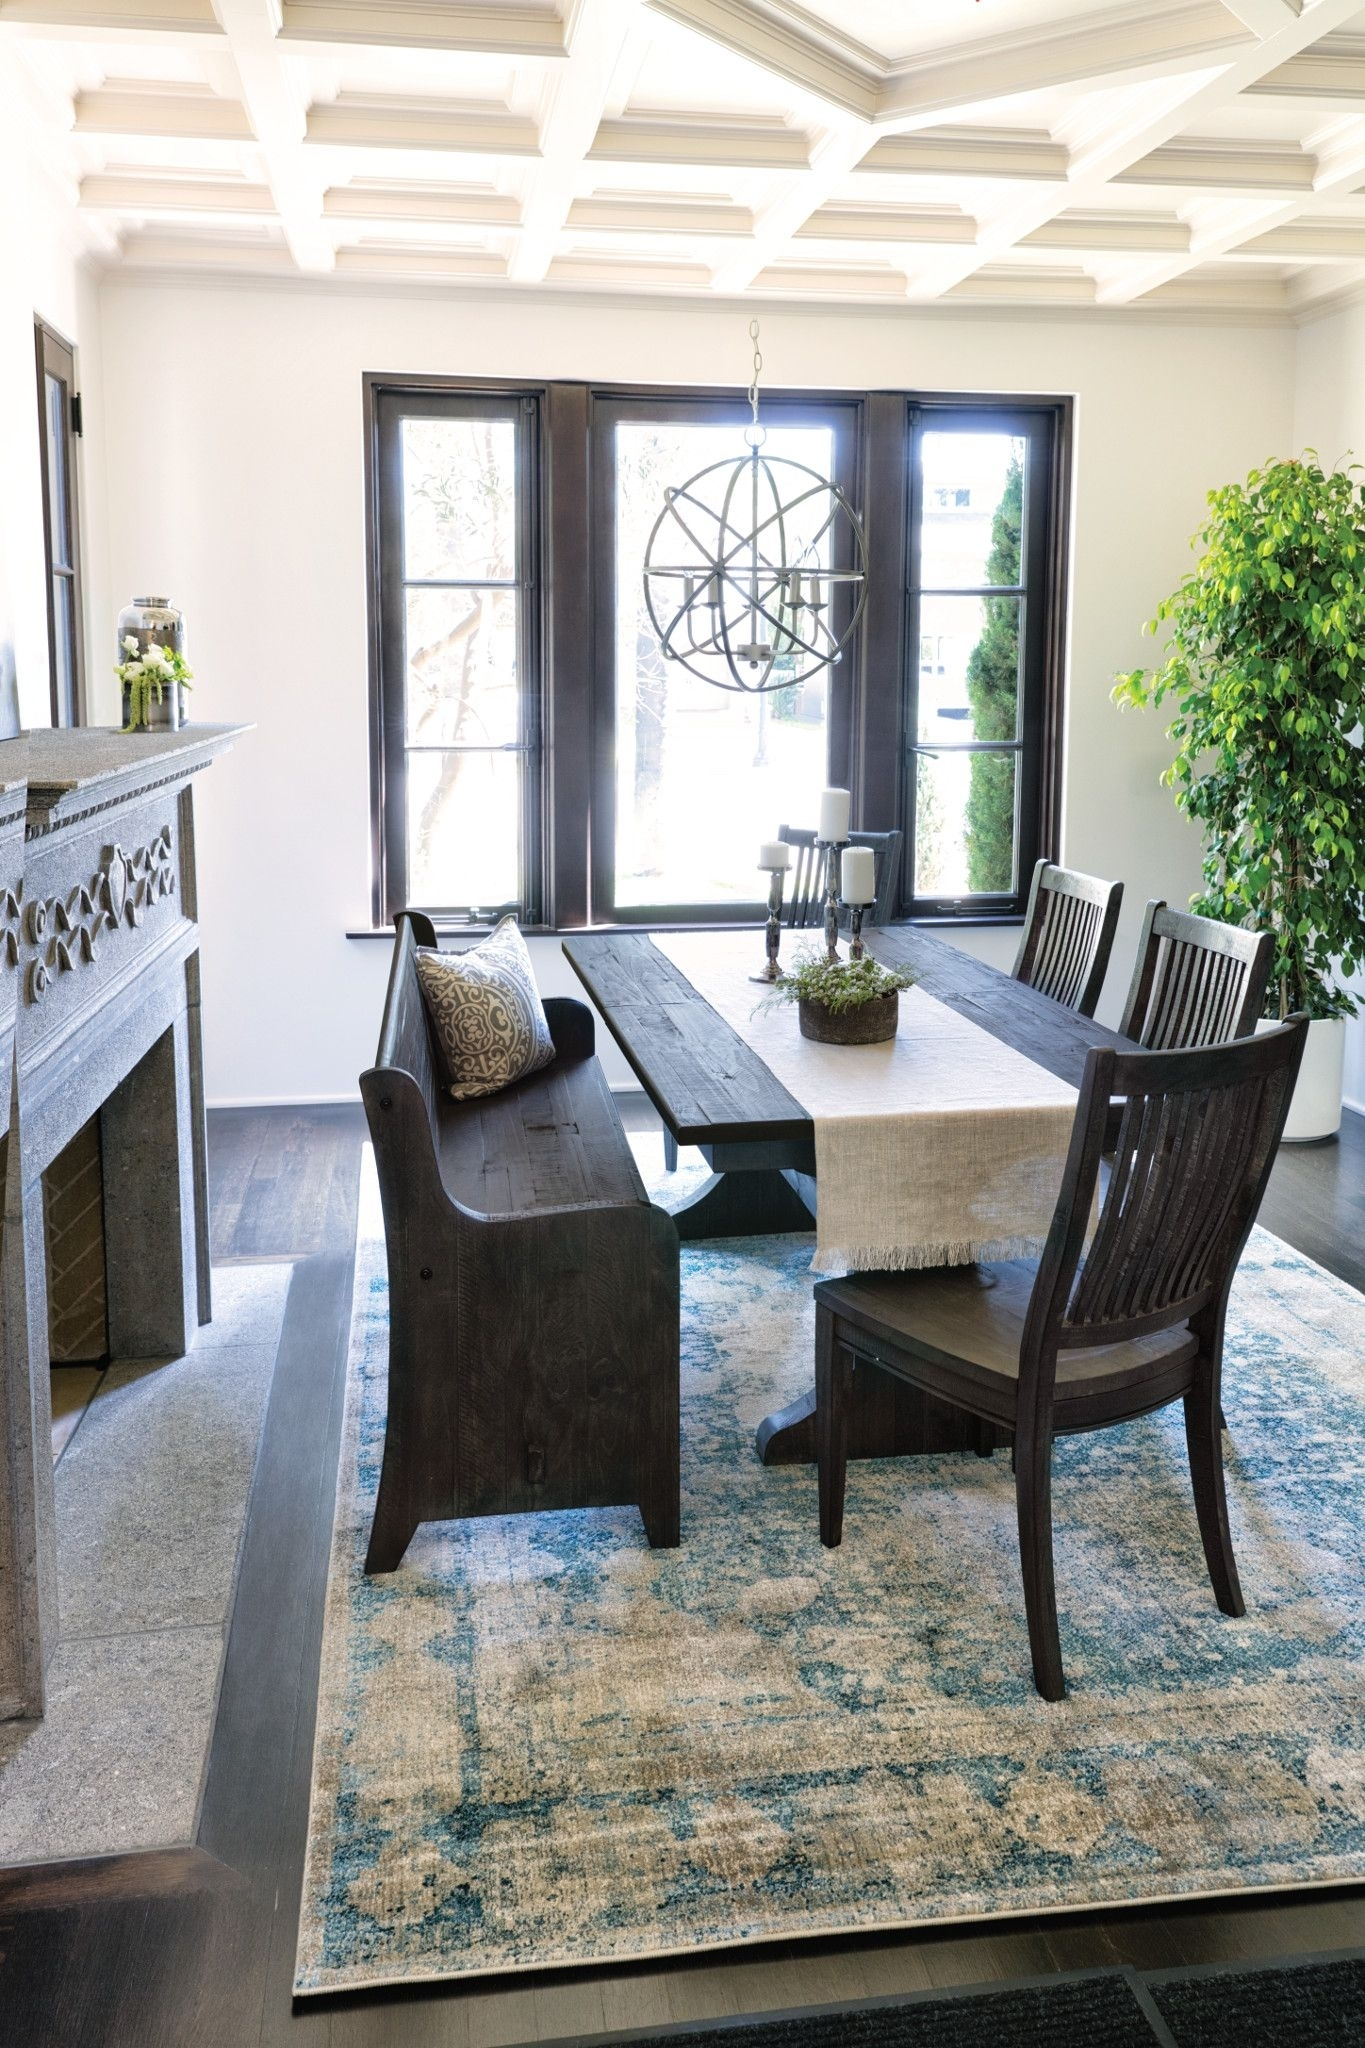 Valencia 72 Inch 6 Piece Dining Set | Pinterest | Church Pew Bench Inside 2018 Valencia 72 Inch 7 Piece Dining Sets (View 3 of 20)